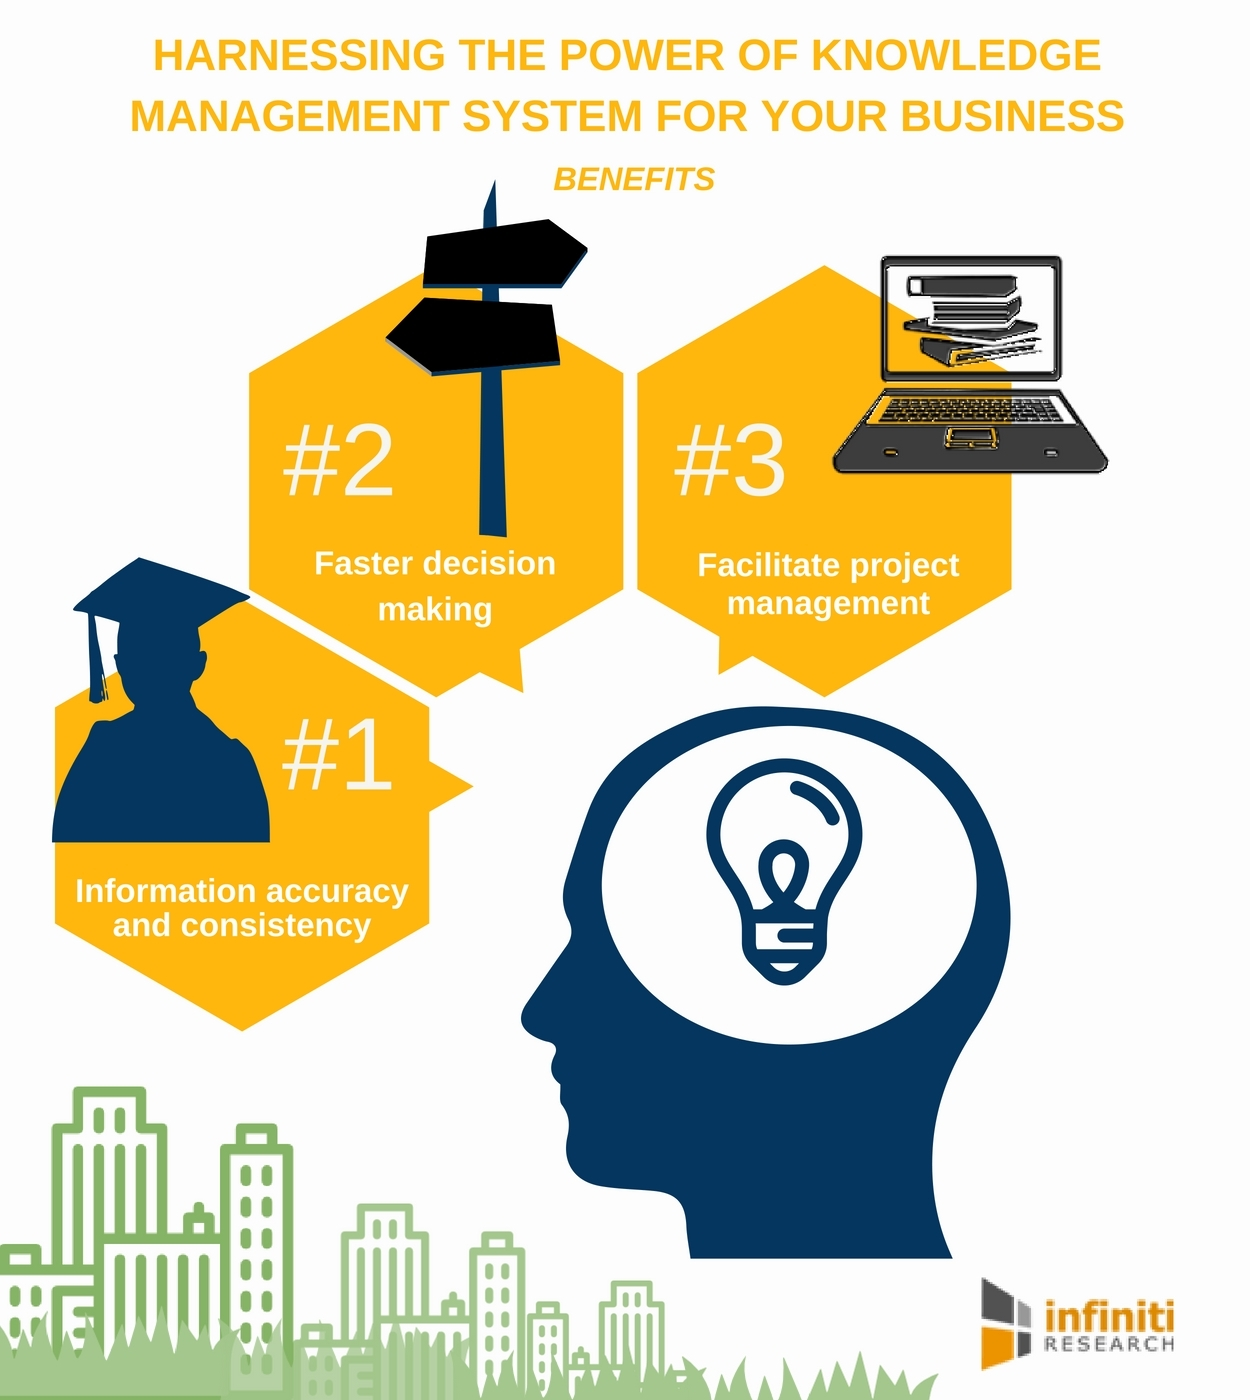 knowledge management system benefits